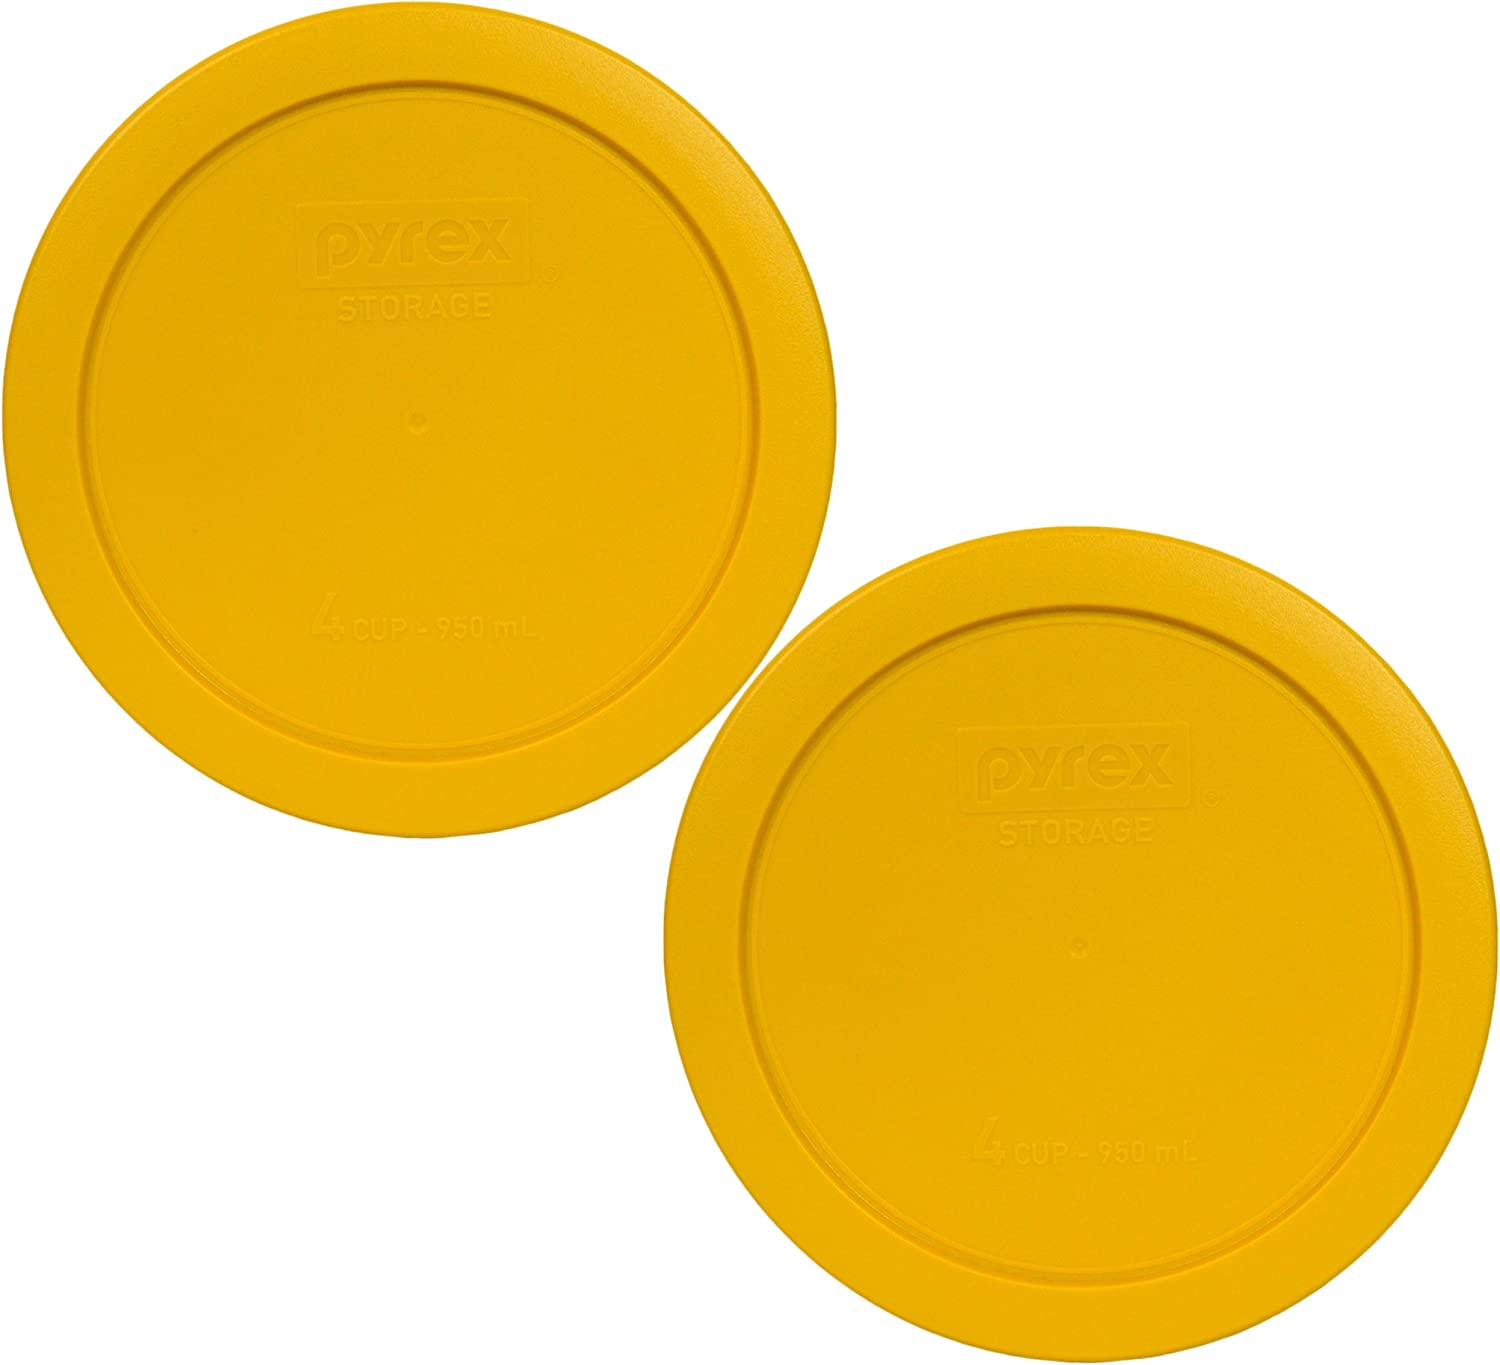 Pyrex 7201-PC Round 4 Cup Storage Lid for Glass Bowls (2, Butter Yellow)